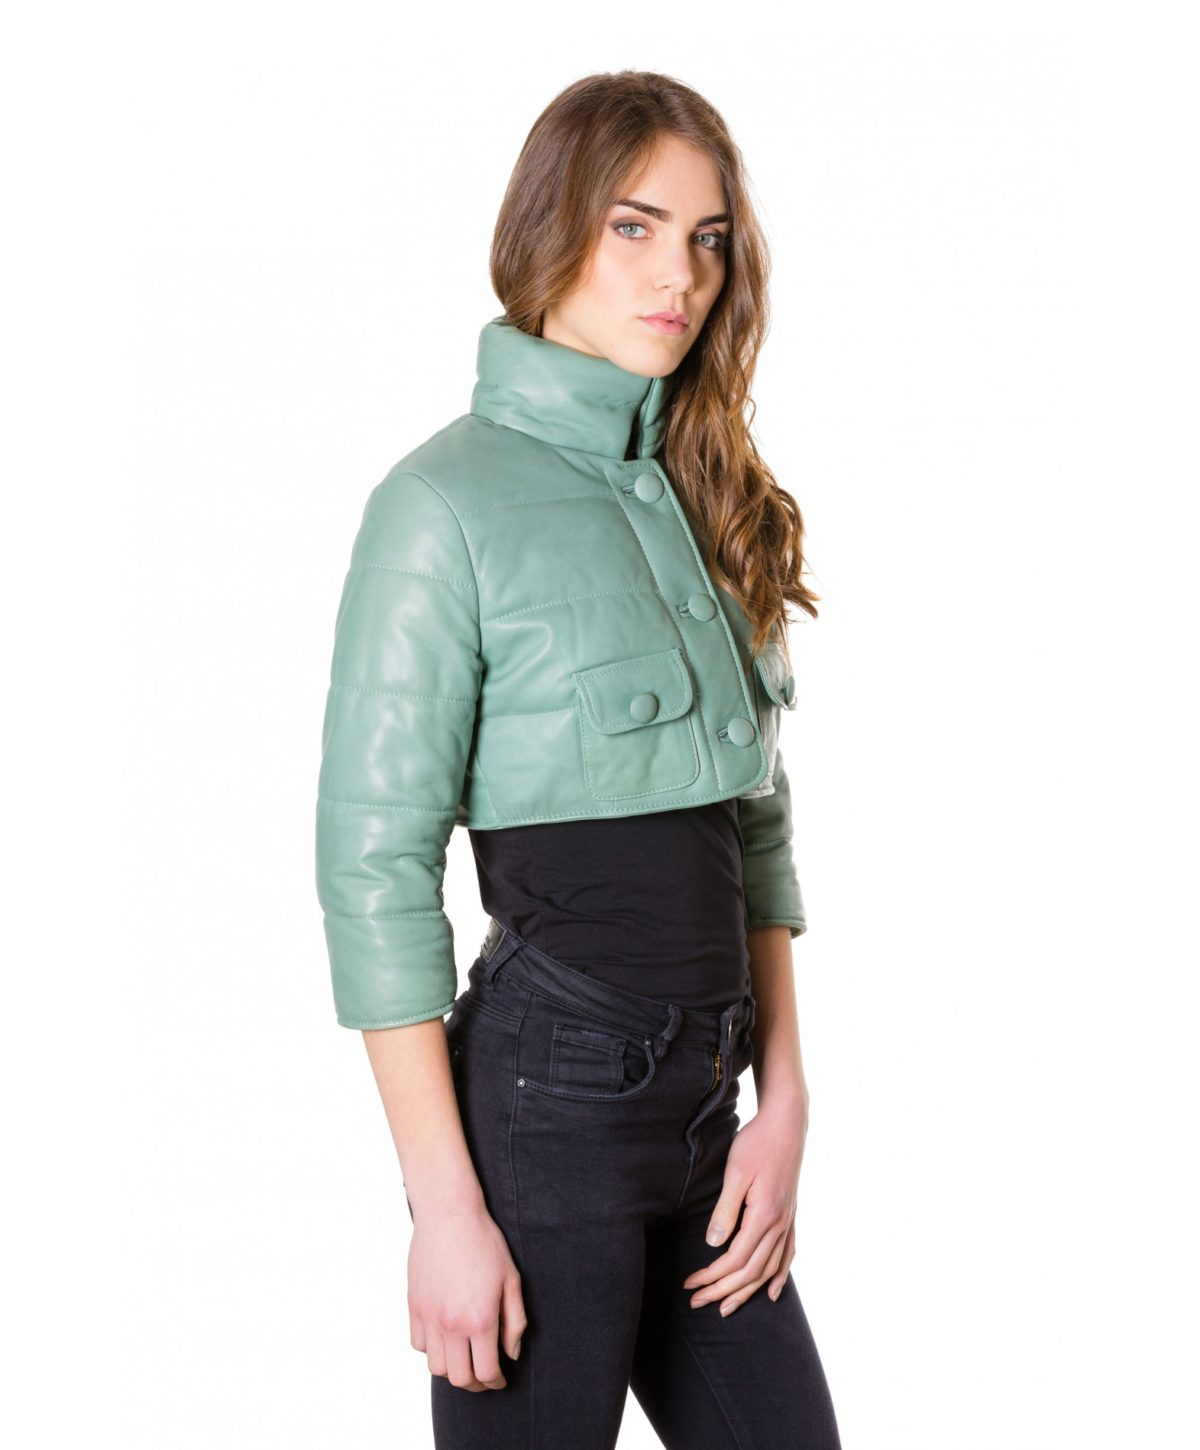 f107-green-colour-nappa-lamb-short-leather-jacket-smooth-aspect (4)